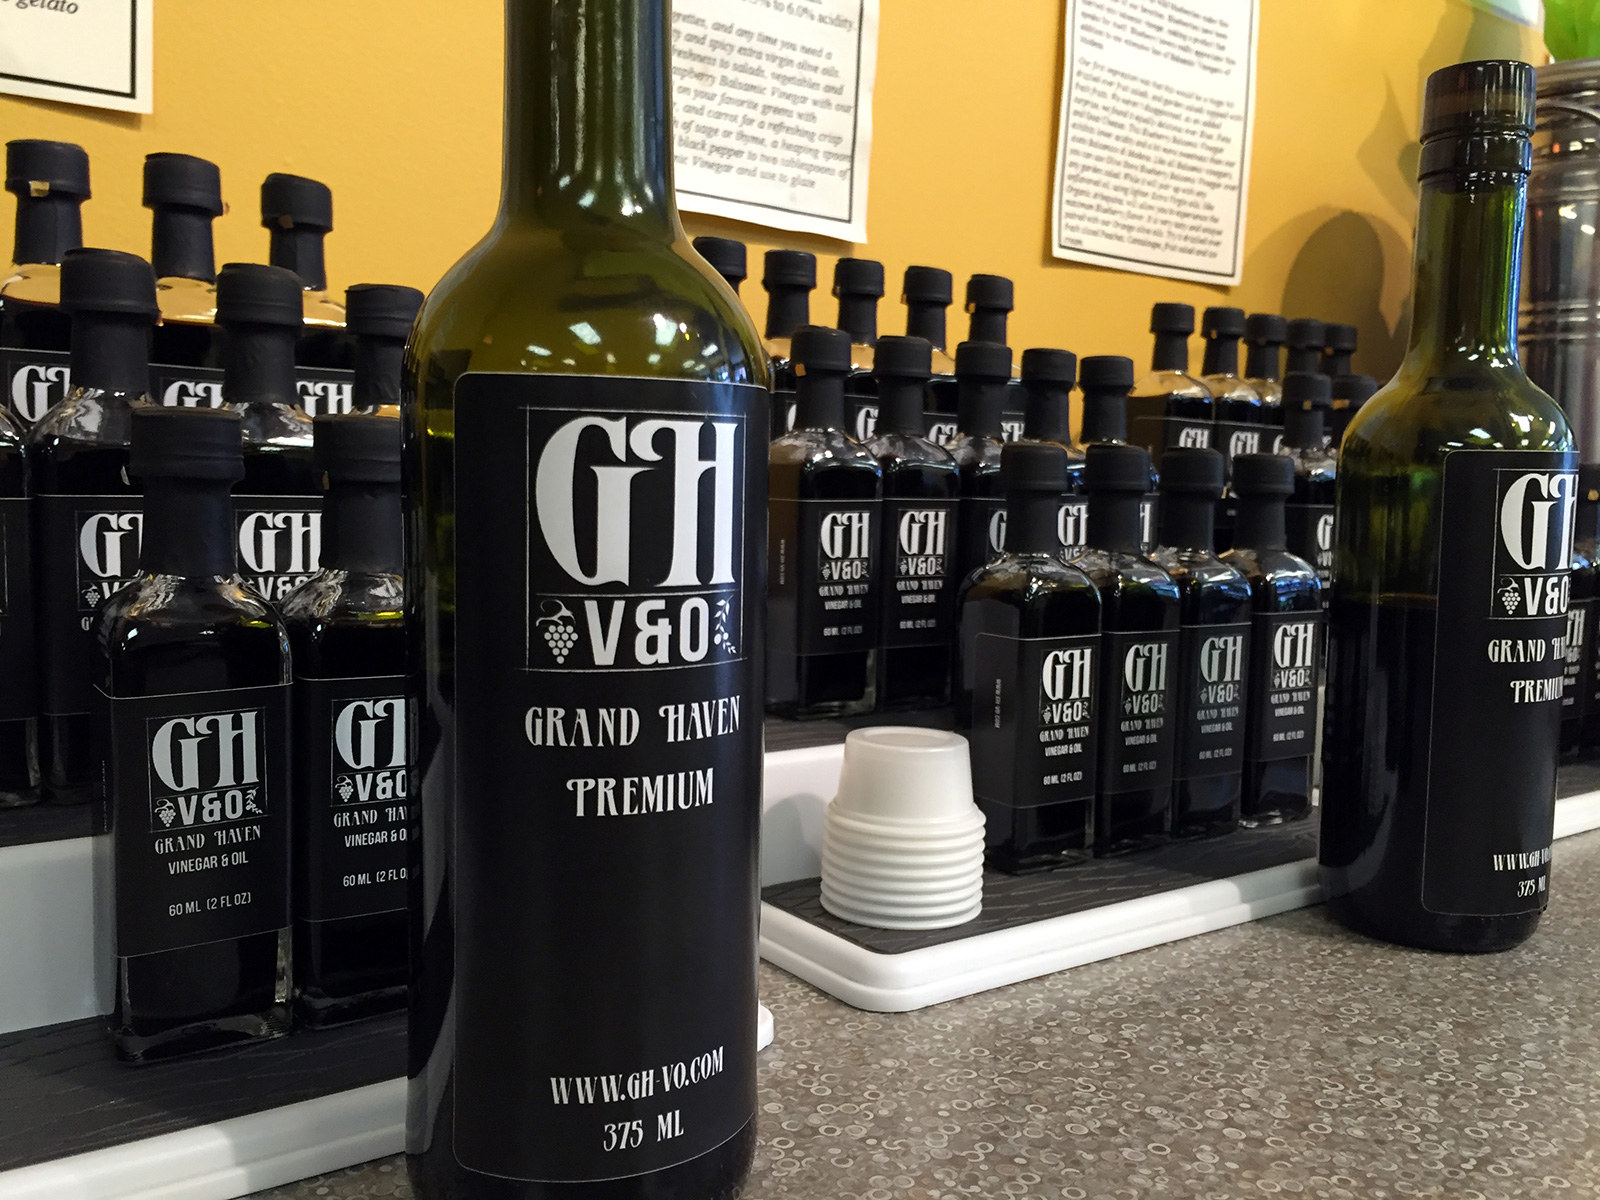 Grand Haven Vinegar & Oil in Grand Haven, Michigan by Jets Like Taxis